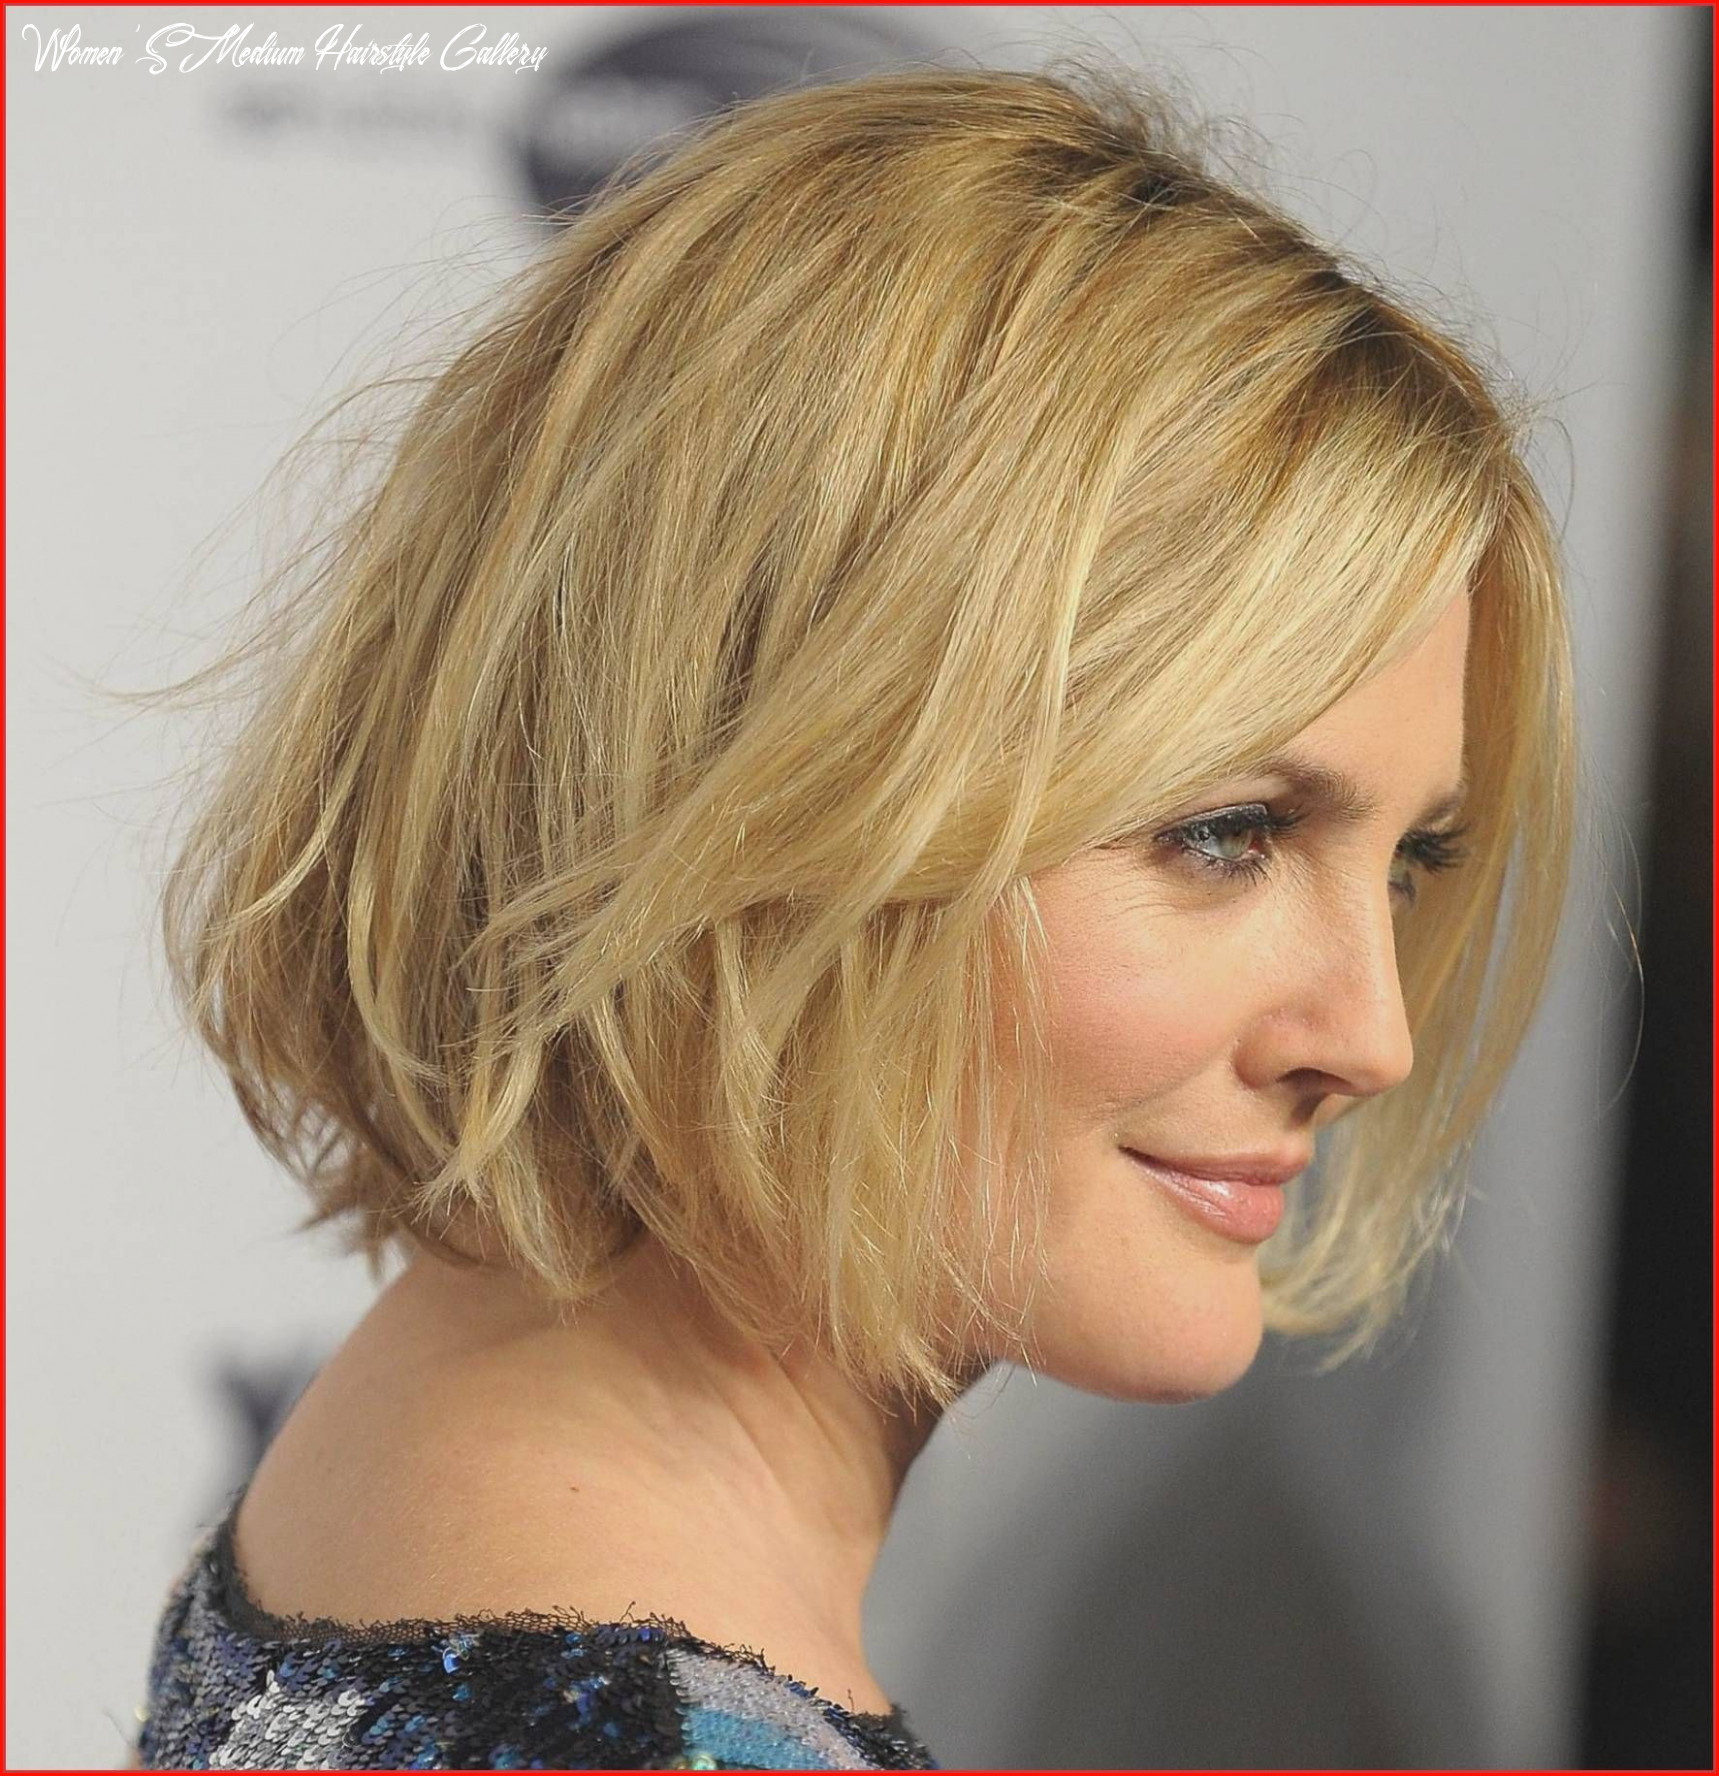 Unique short and medium hairstyles for women gallery of women